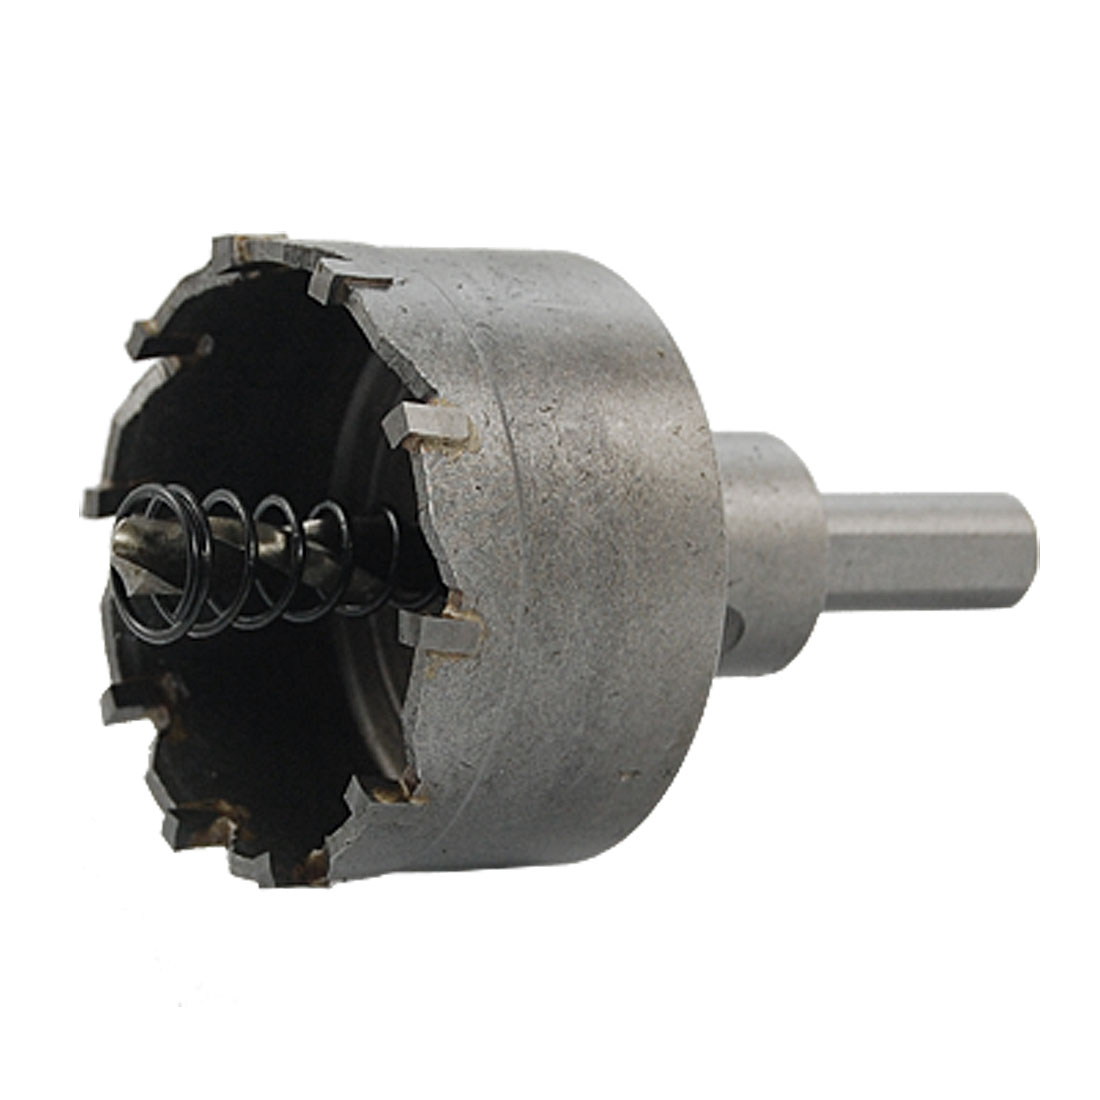 Alloy Cutting Undetachable Drill Bit Inside 50mm Diameter Hole Saw